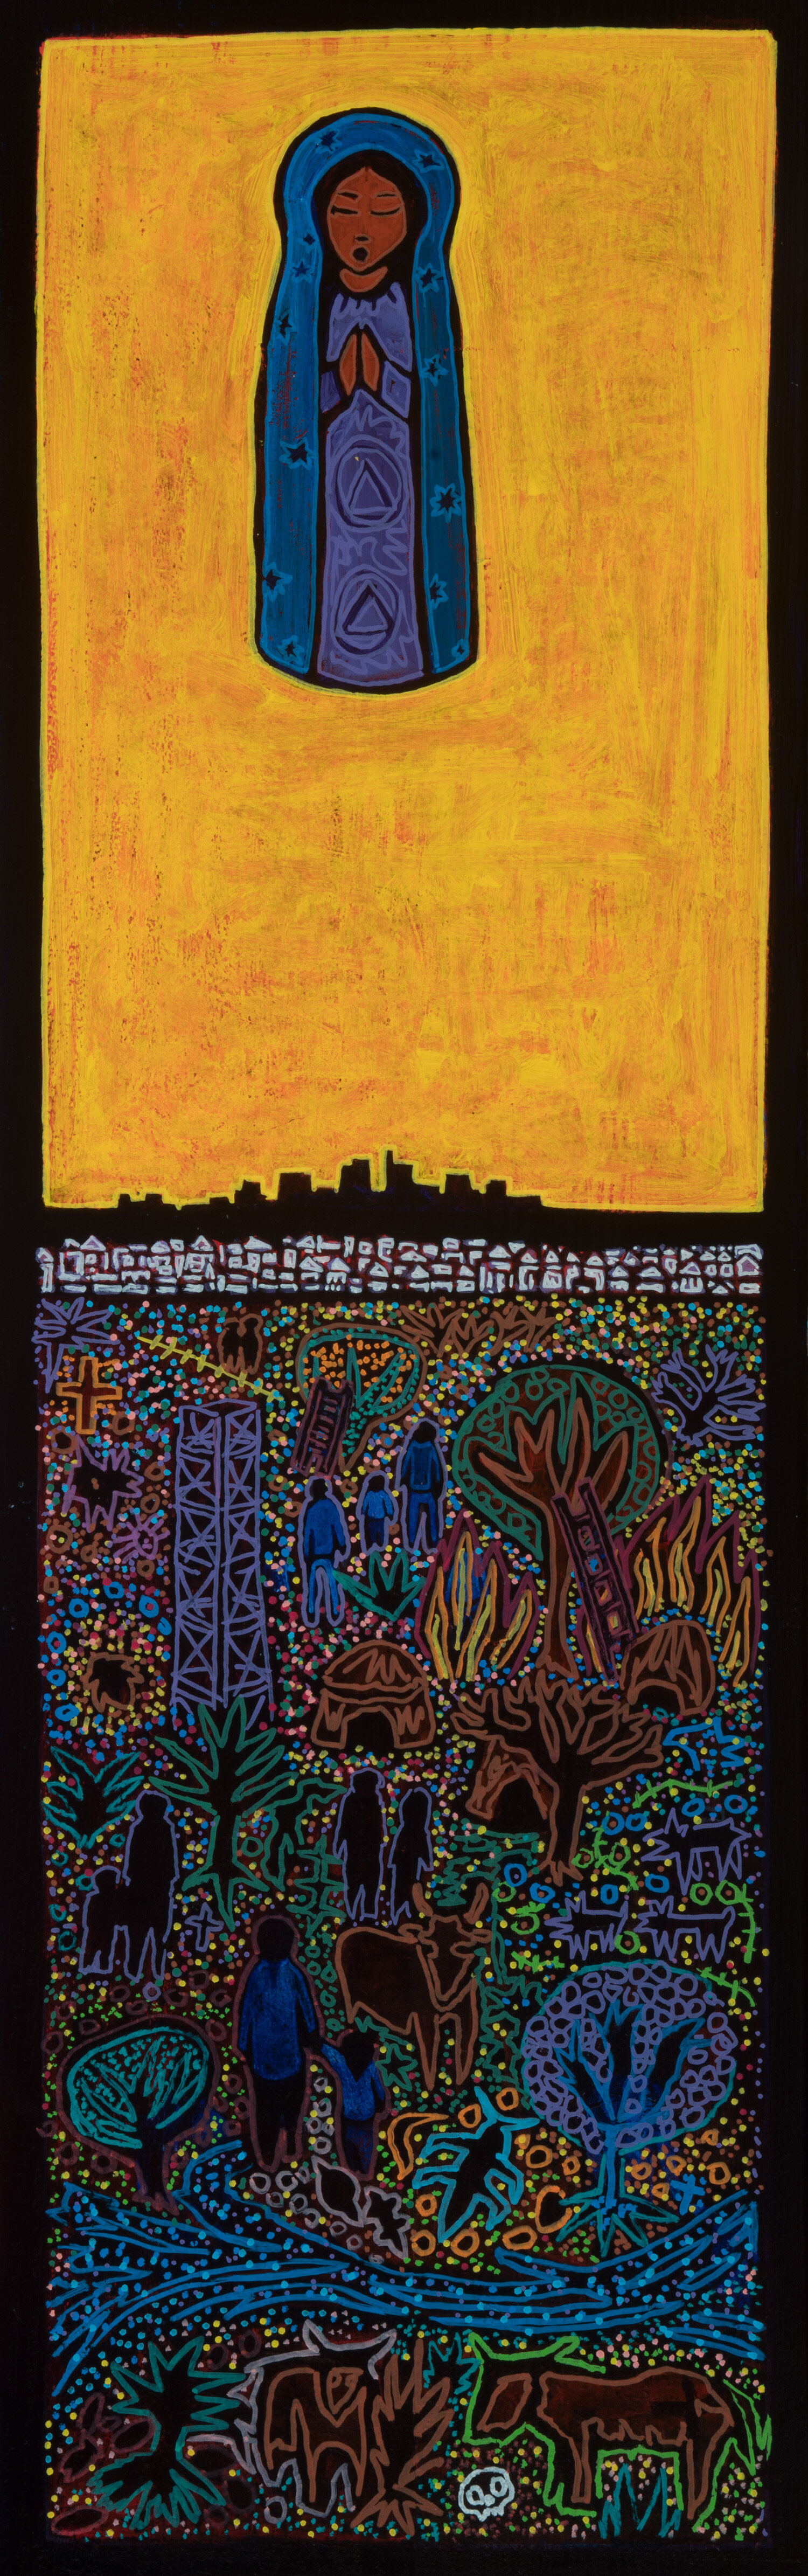 vertical crosssection of la, 2019, mixed media on wood, 11x36